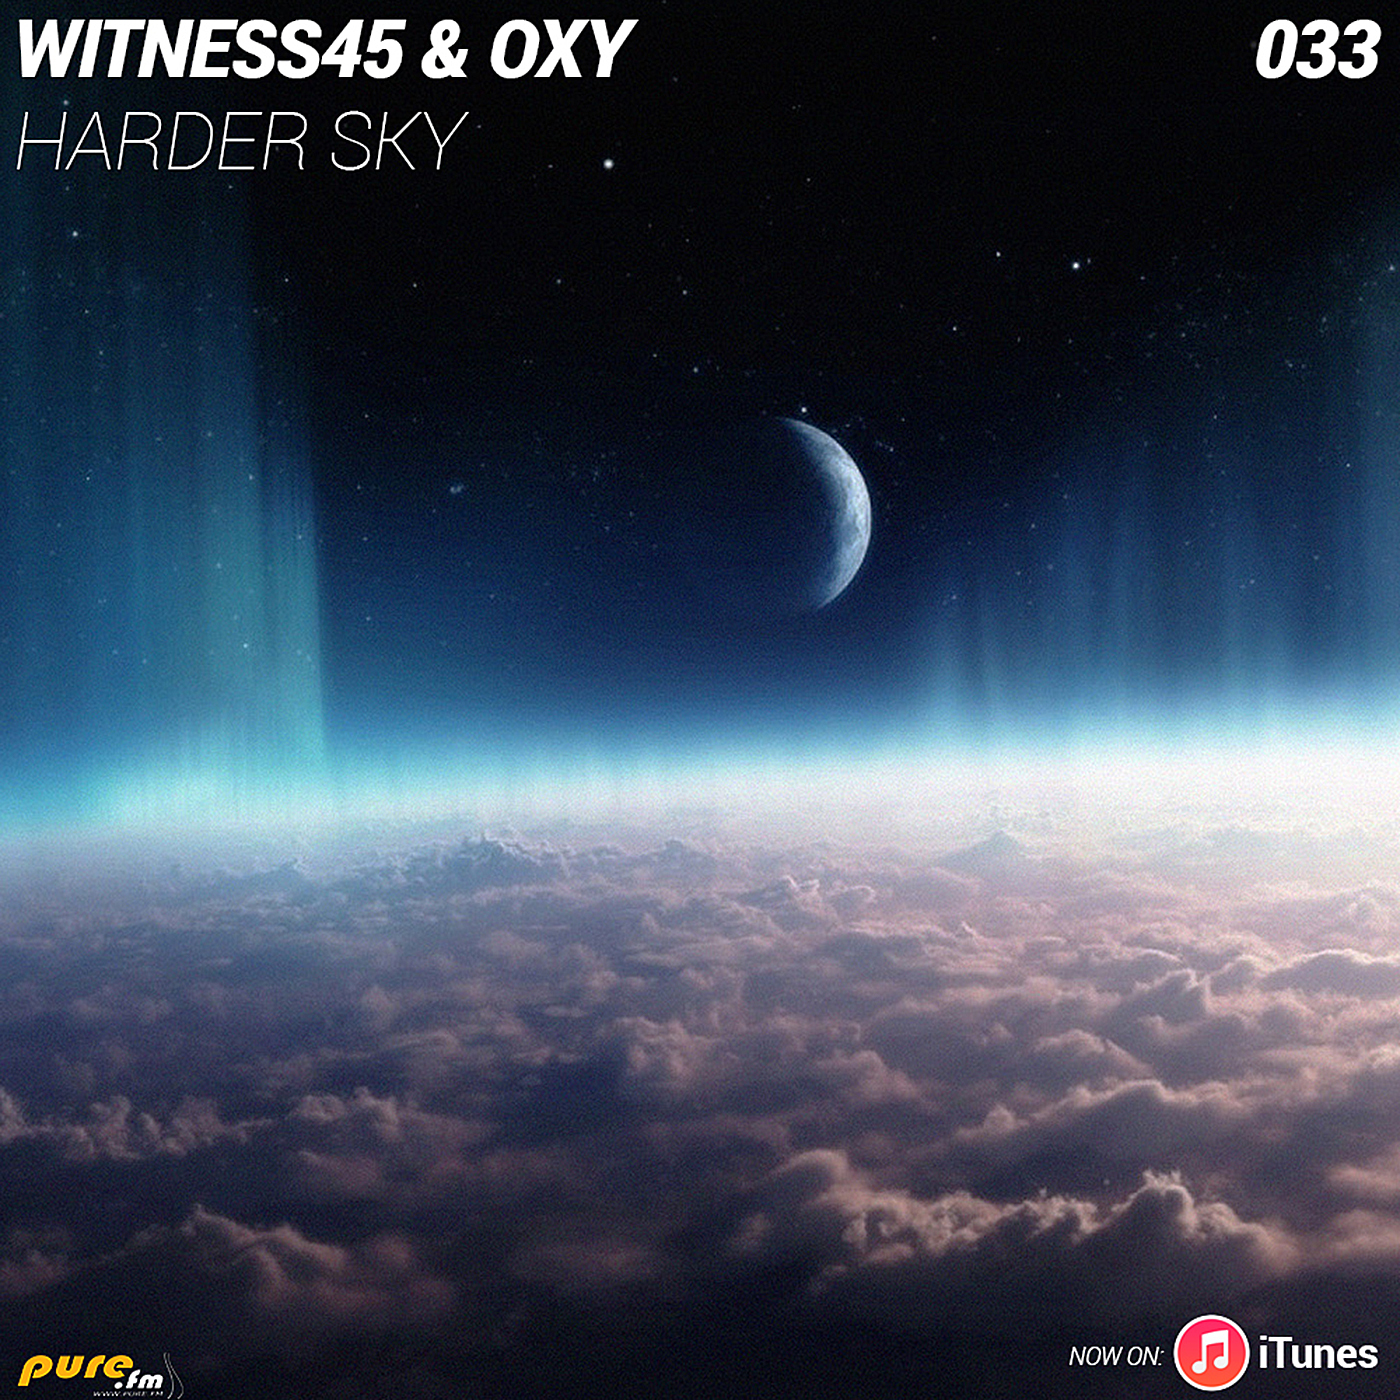 Witness45 & Oxy – Harder Sky #033